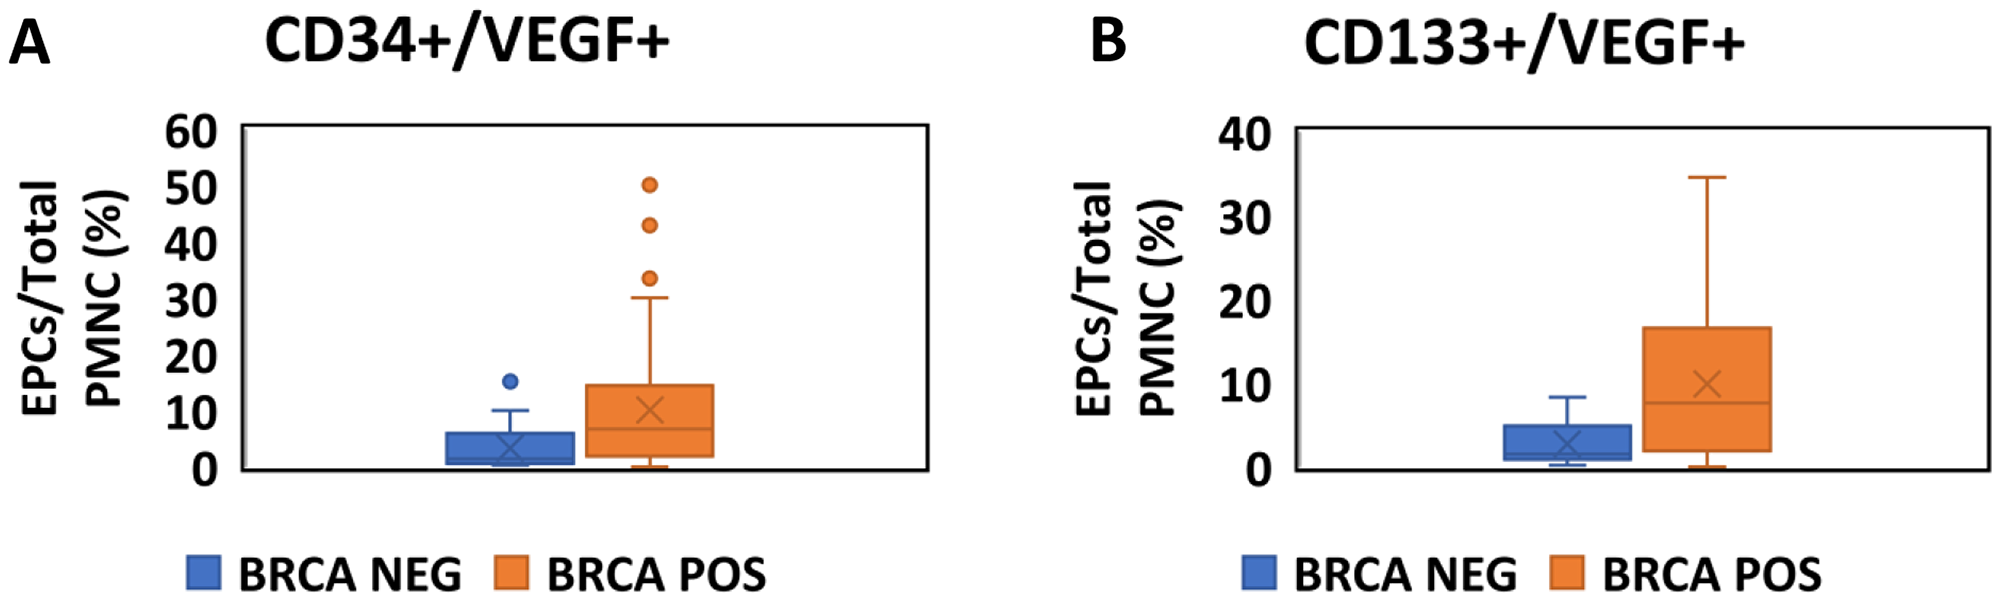 Quantitative assessment of EPCs in BRCA positive carriers and negative carriers.